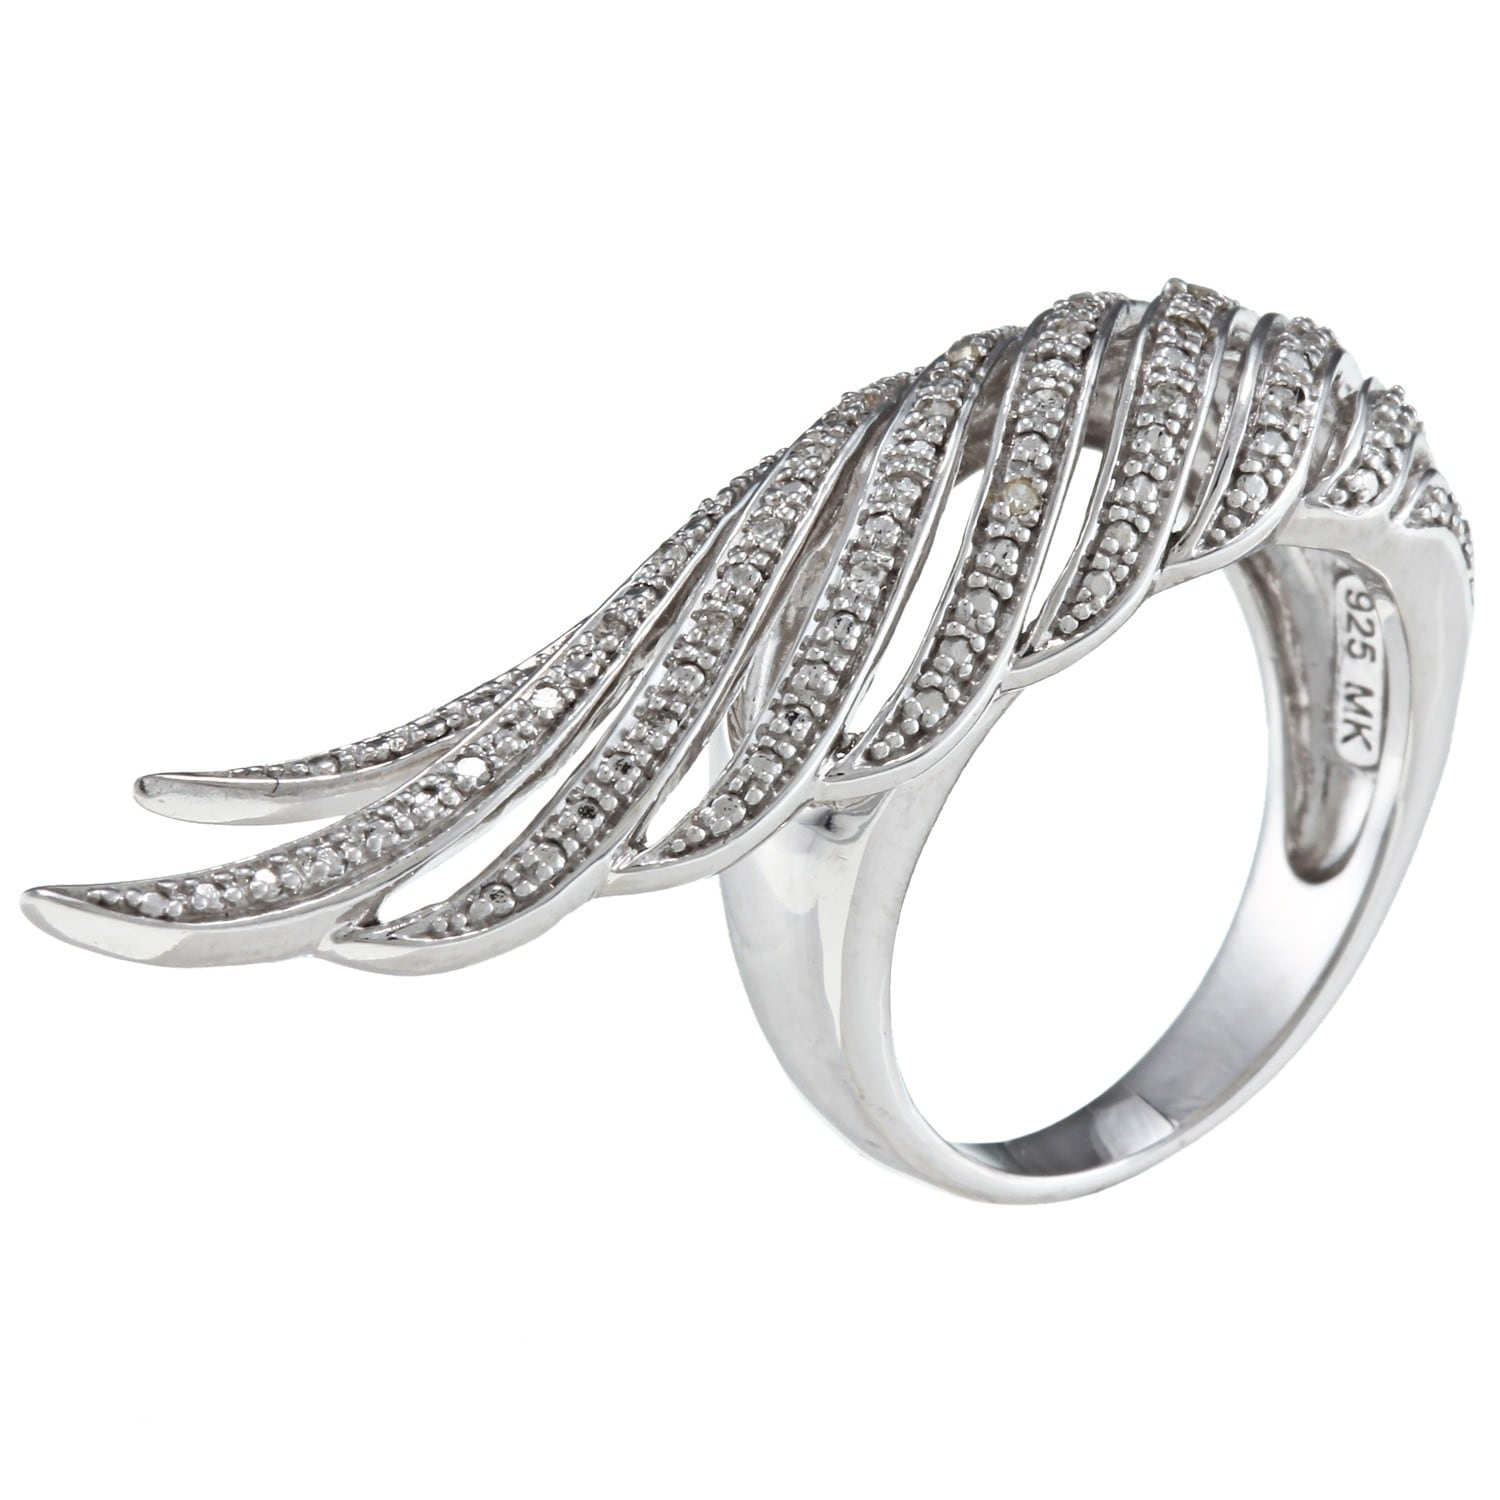 feather ring silver k nlpo s u engagement rings size l gallery listing fullxfull adjustable sterling il photo angel r